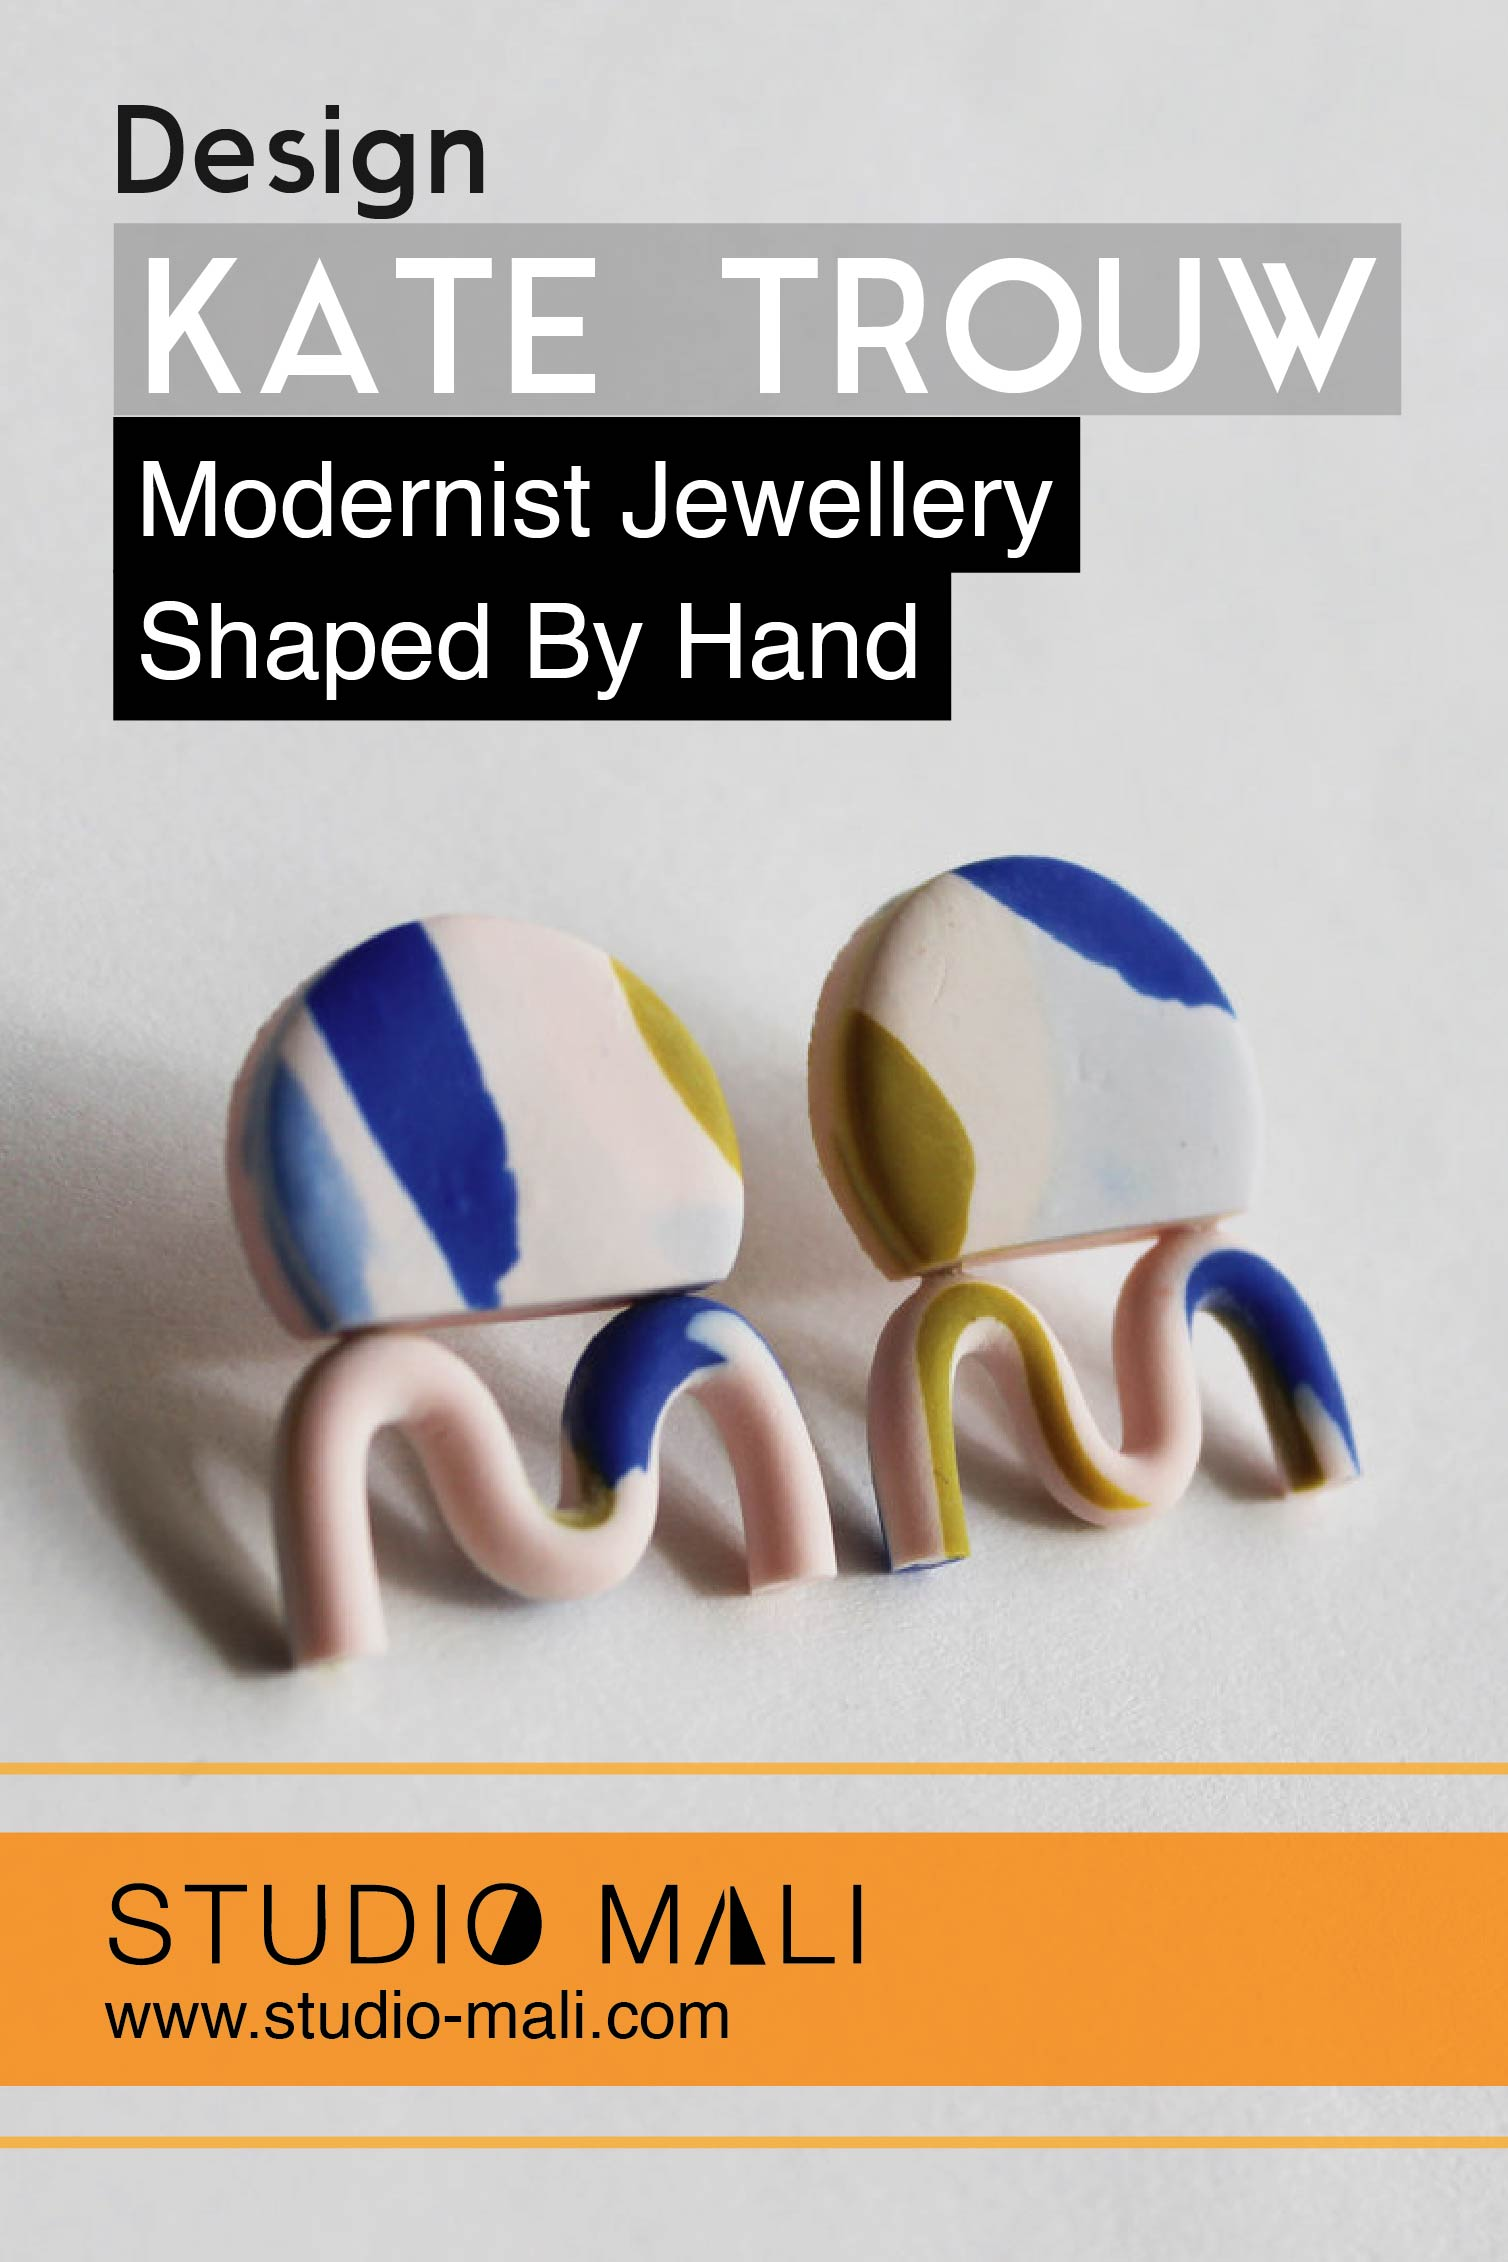 Kate Trouw: Modernist Jewellery Shaped By Hand